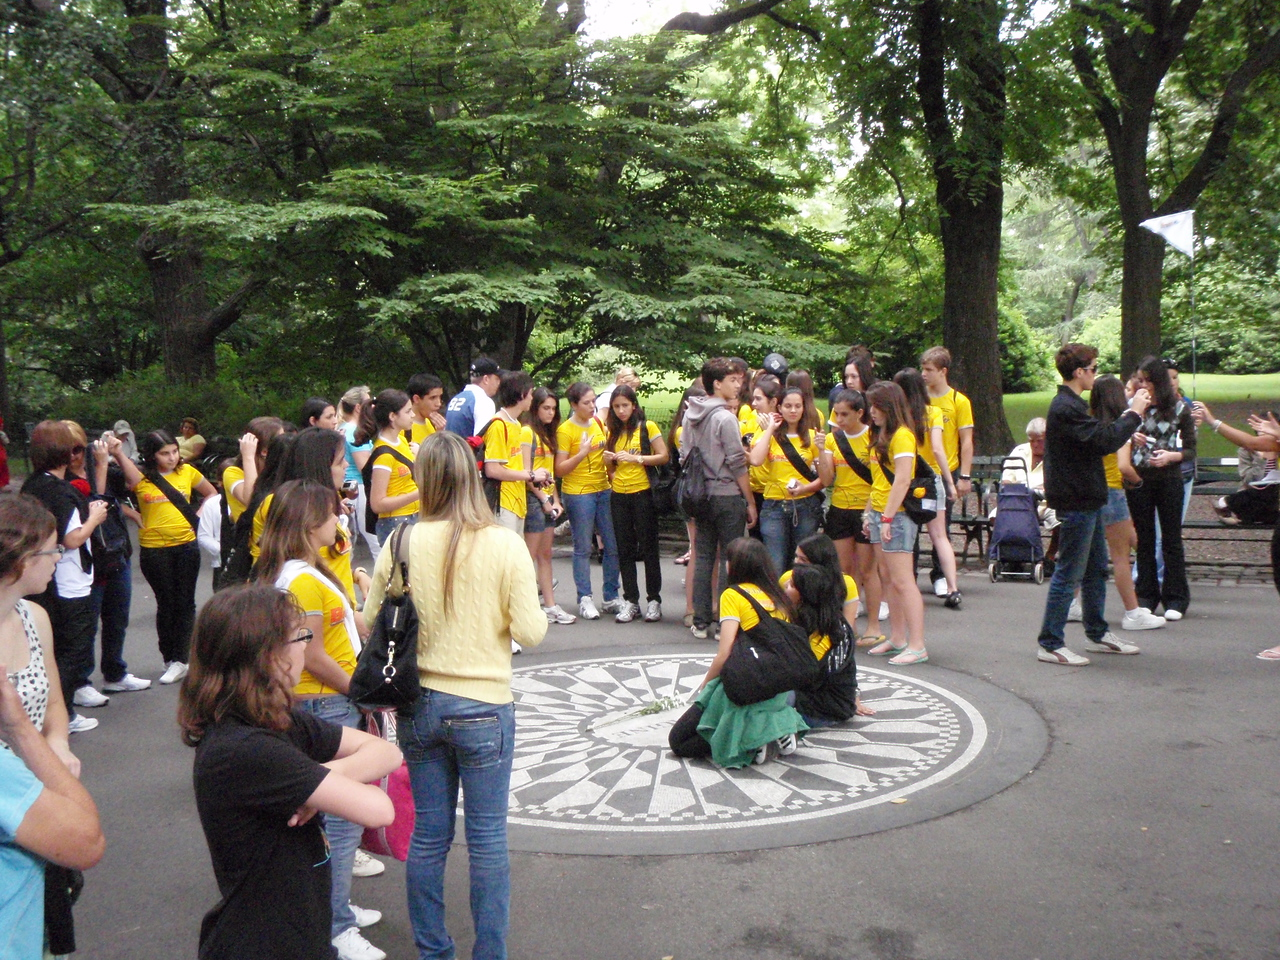 Brazilians invade Strawberry Fields